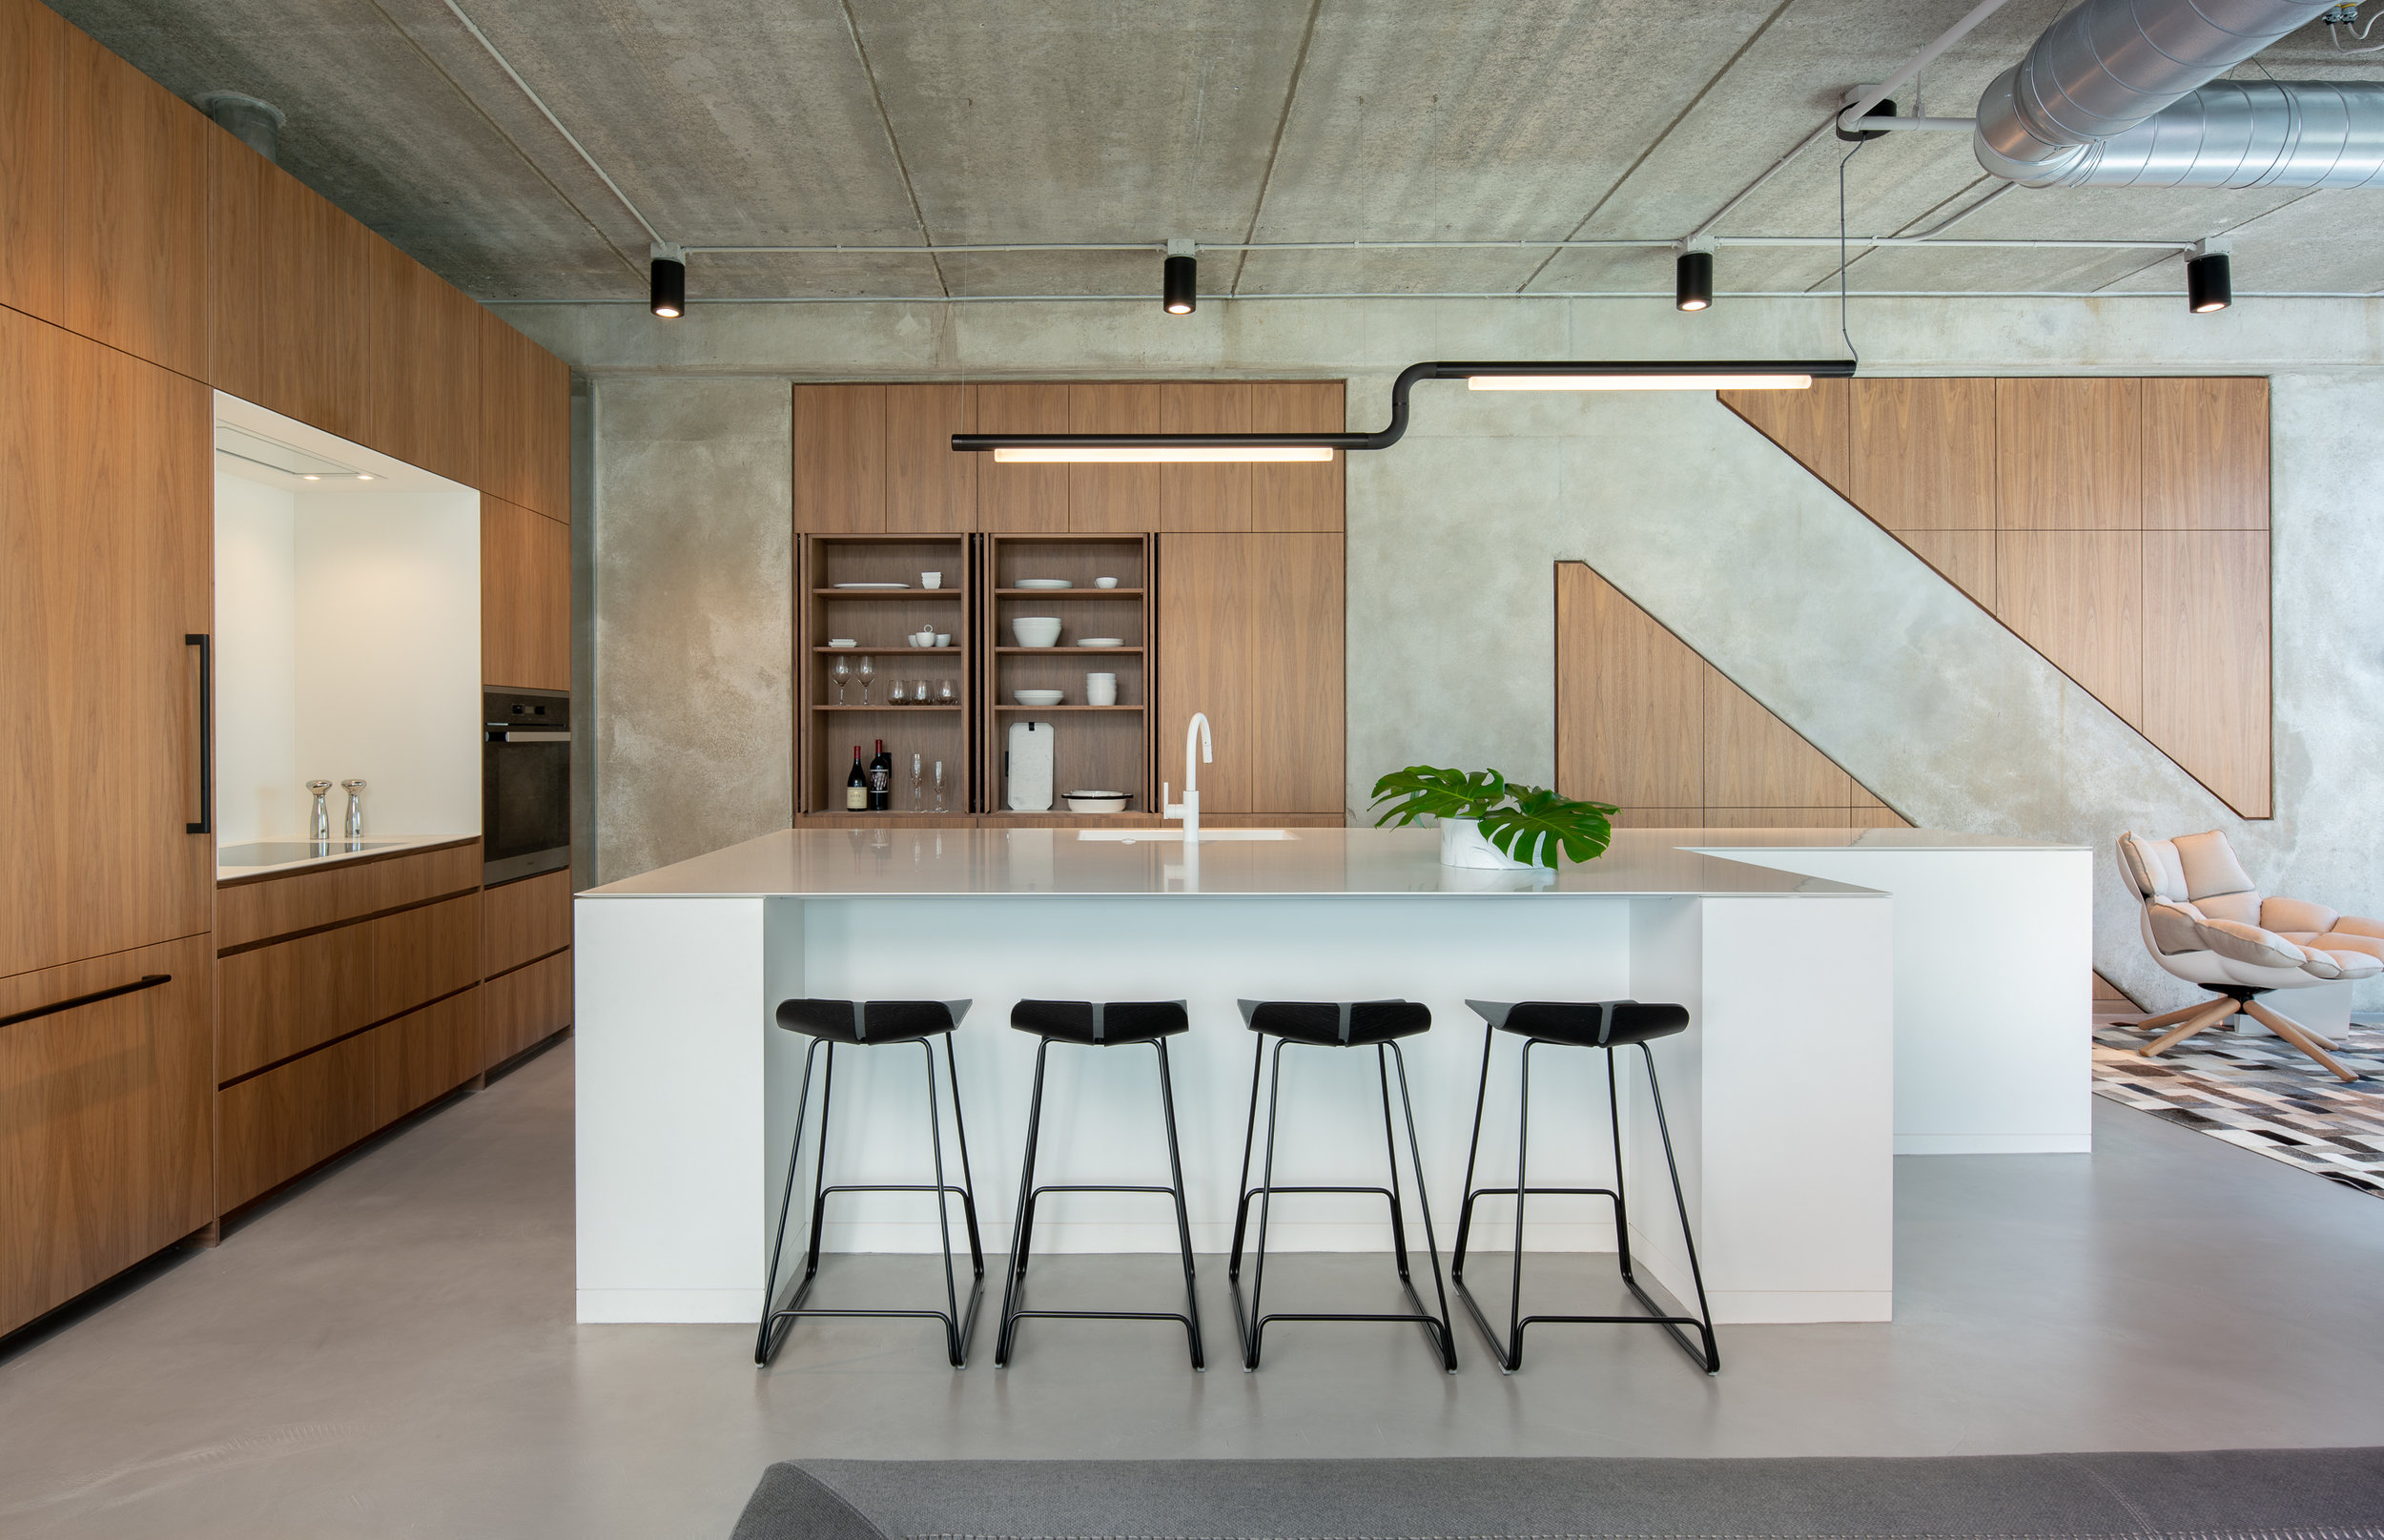 Modern kitchen renovation with custom fitted cabinetry designed by Christian Dean Architecture